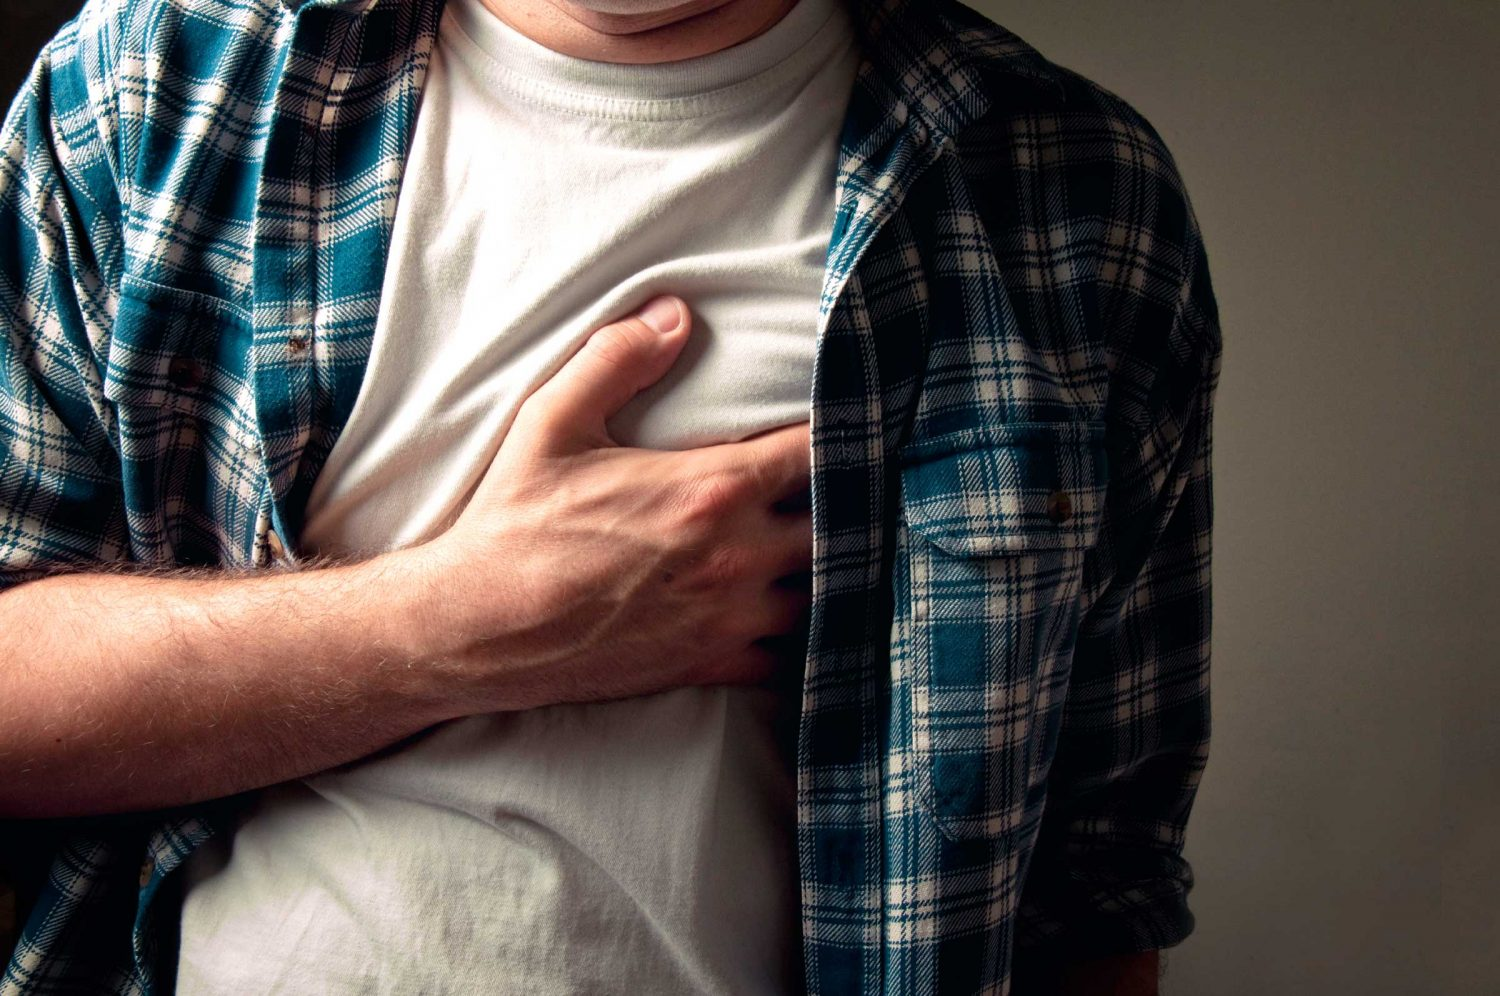 Is It Really A Heart Attack? How To Tell If Your Having The Big One